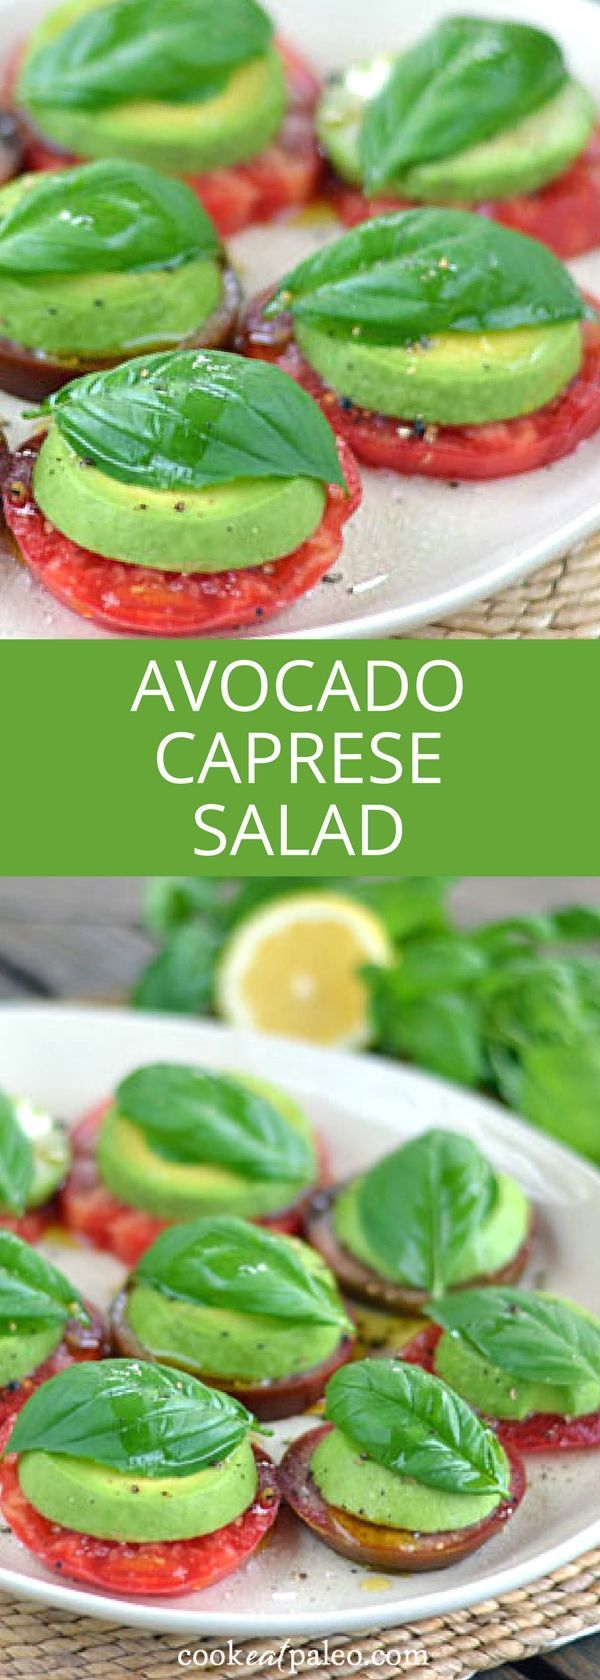 Avocado Caprese salad is a paleo take on a Caprese salad with tomatoes and basil... - Recipes -